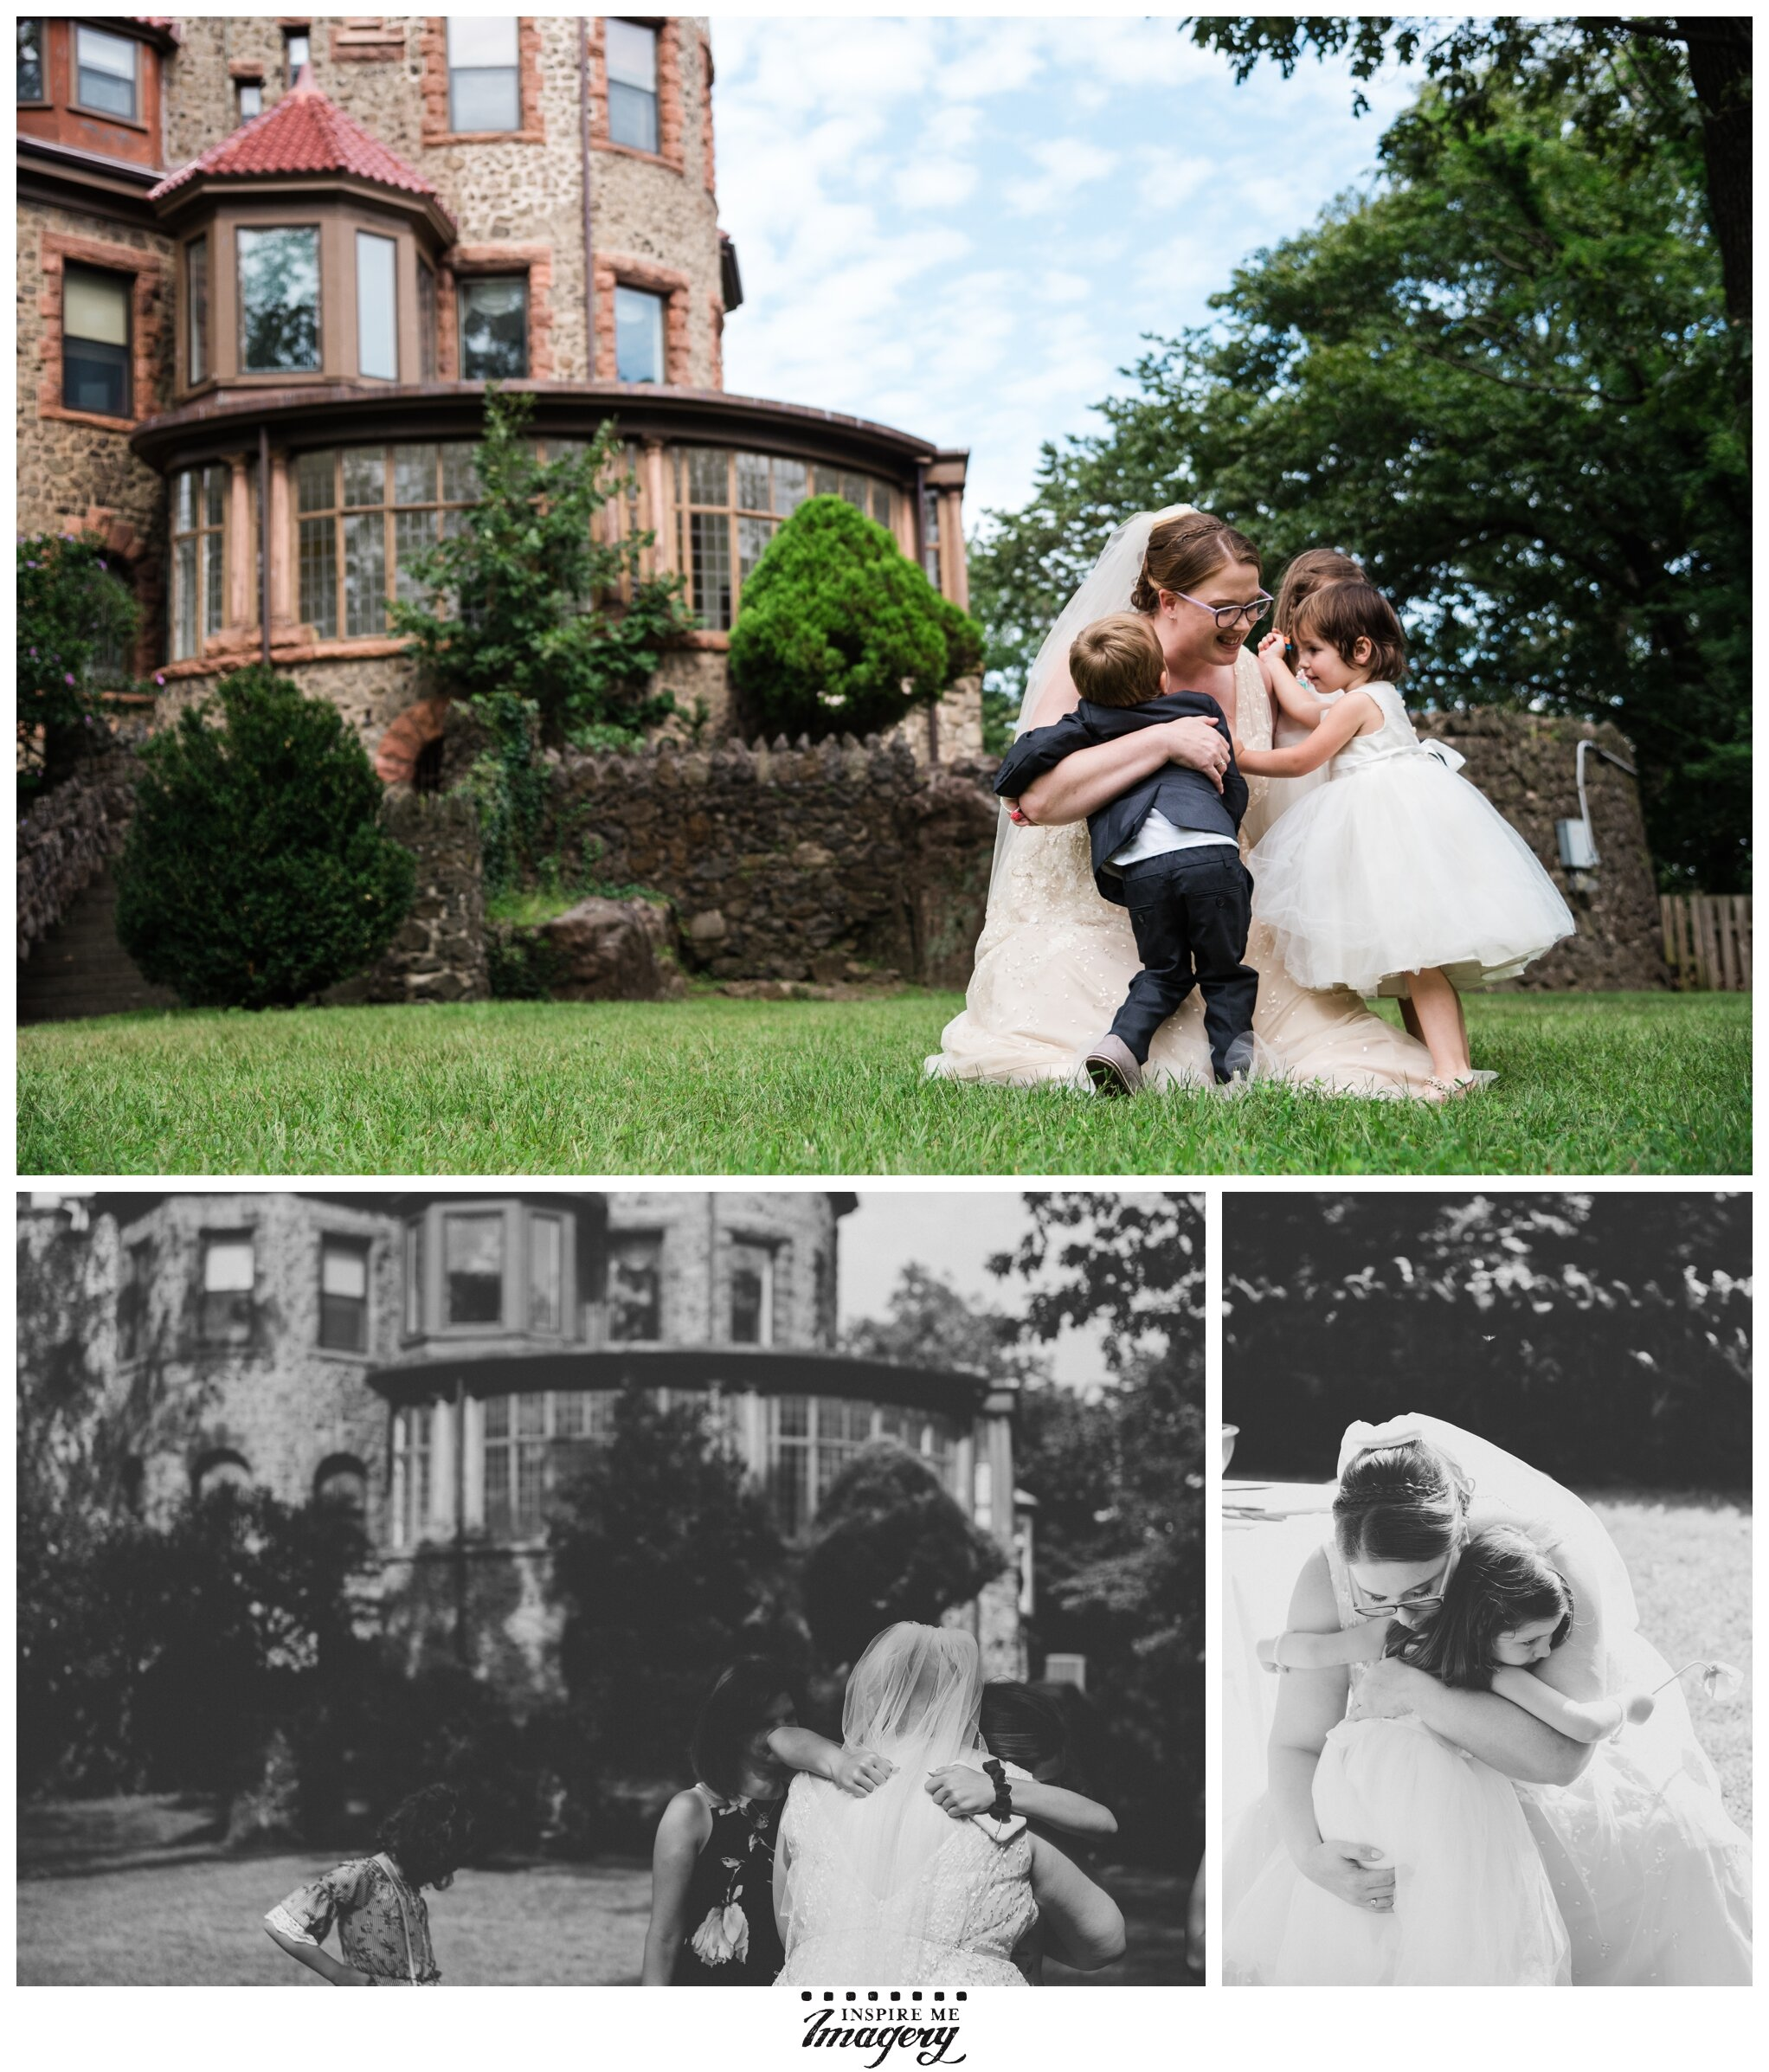 kips-castle-wedding-verona-nj14.jpg